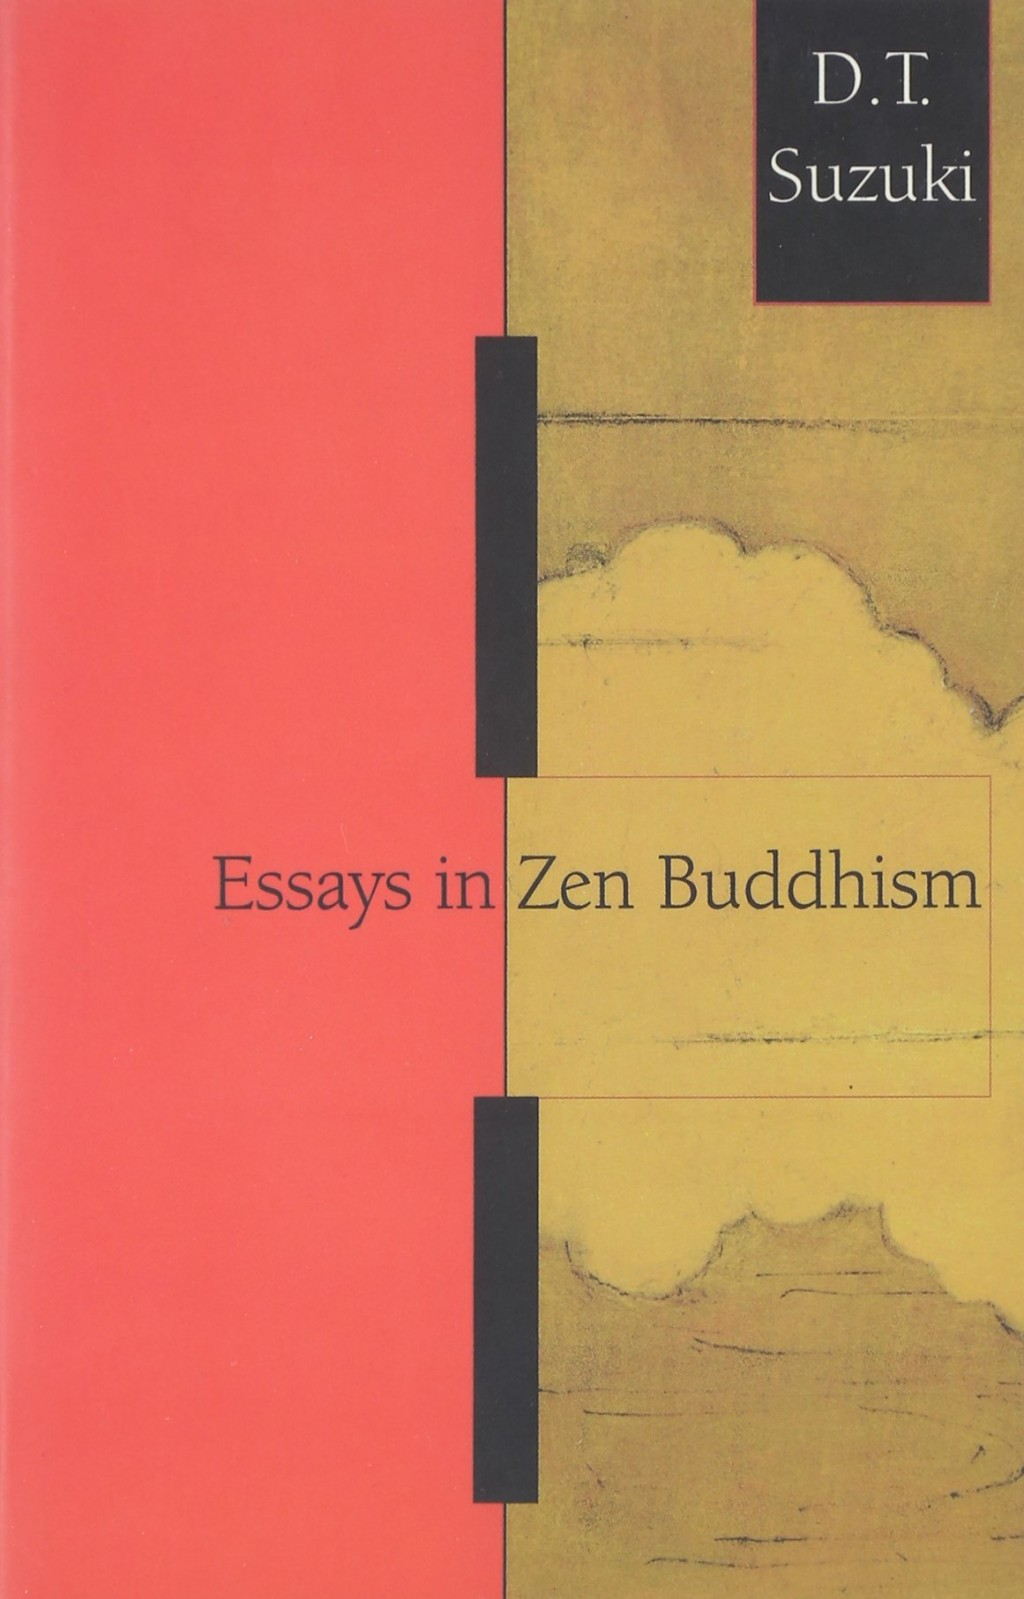 013 71cccelhvrl Buddhism Essay Beautiful Buddha In Hindi Ideas Large